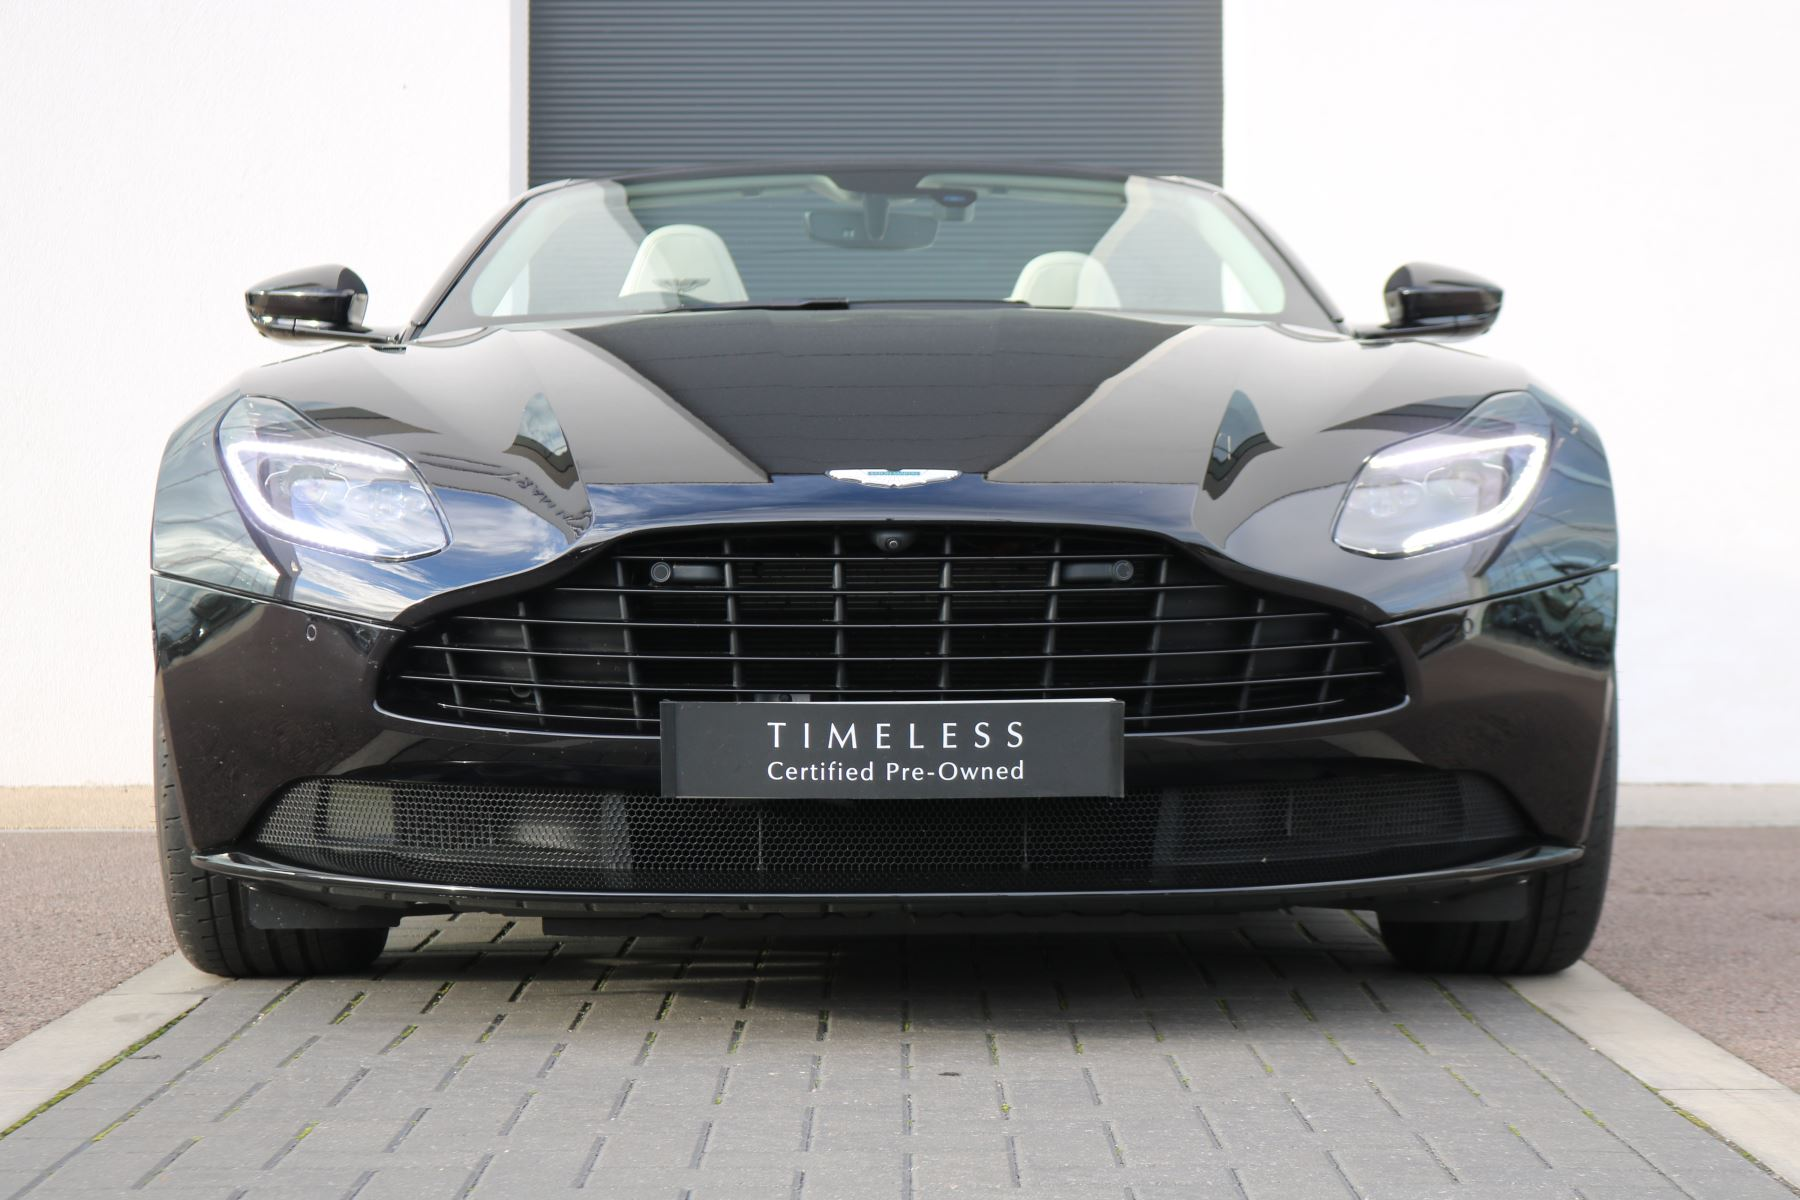 Aston Martin DB11 V8 Volante Touchtronic One Owner Low Mileage  4.0 Automatic 2 door Convertible (2021)